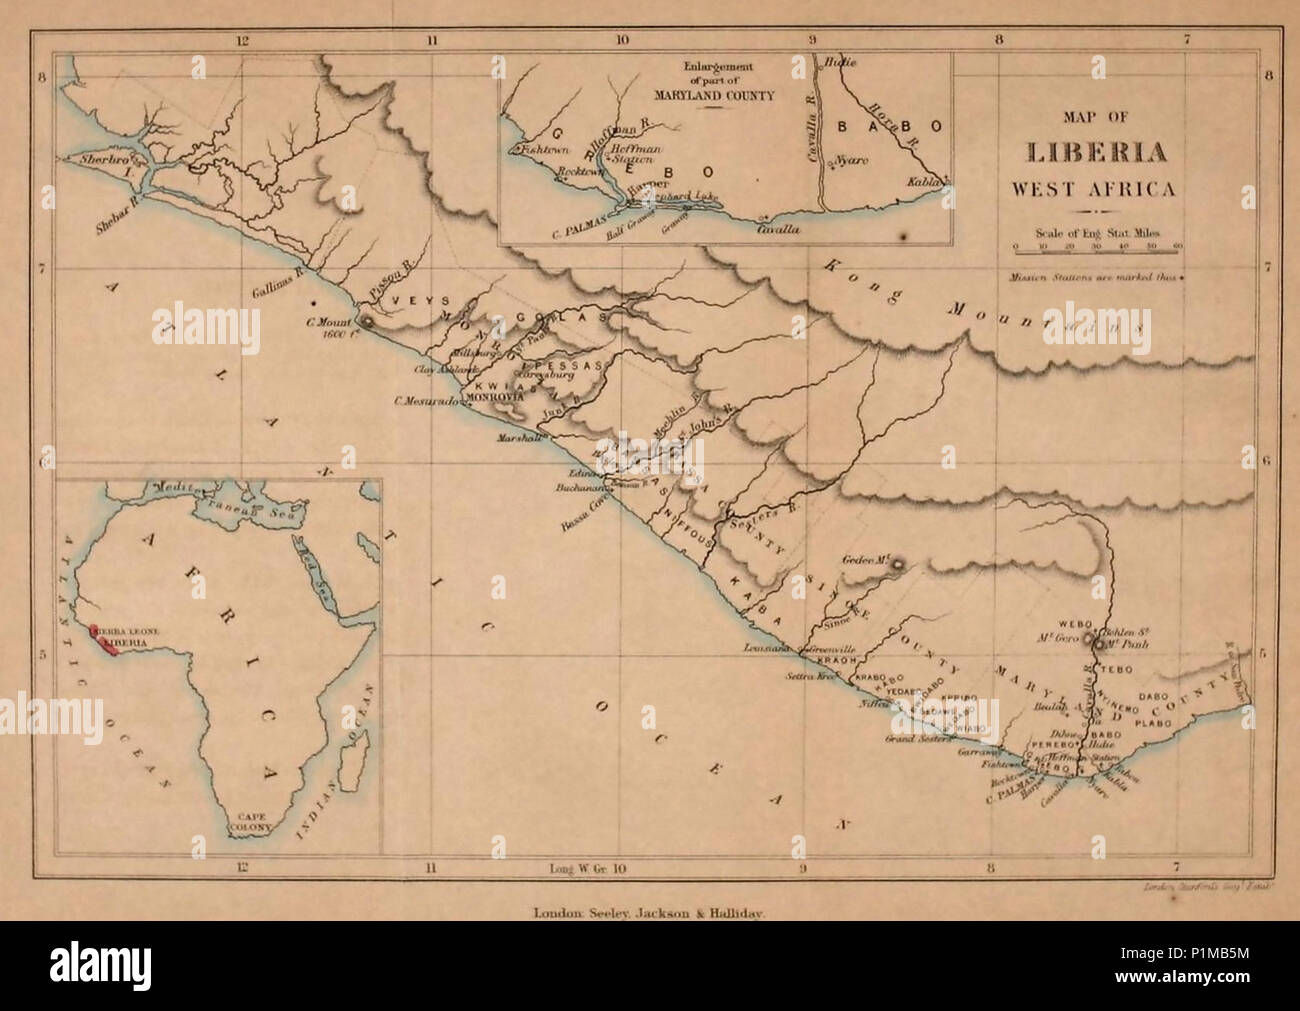 Liberia On Africa Map.1868 Map Of Liberia West Africa Stock Photo 207586896 Alamy